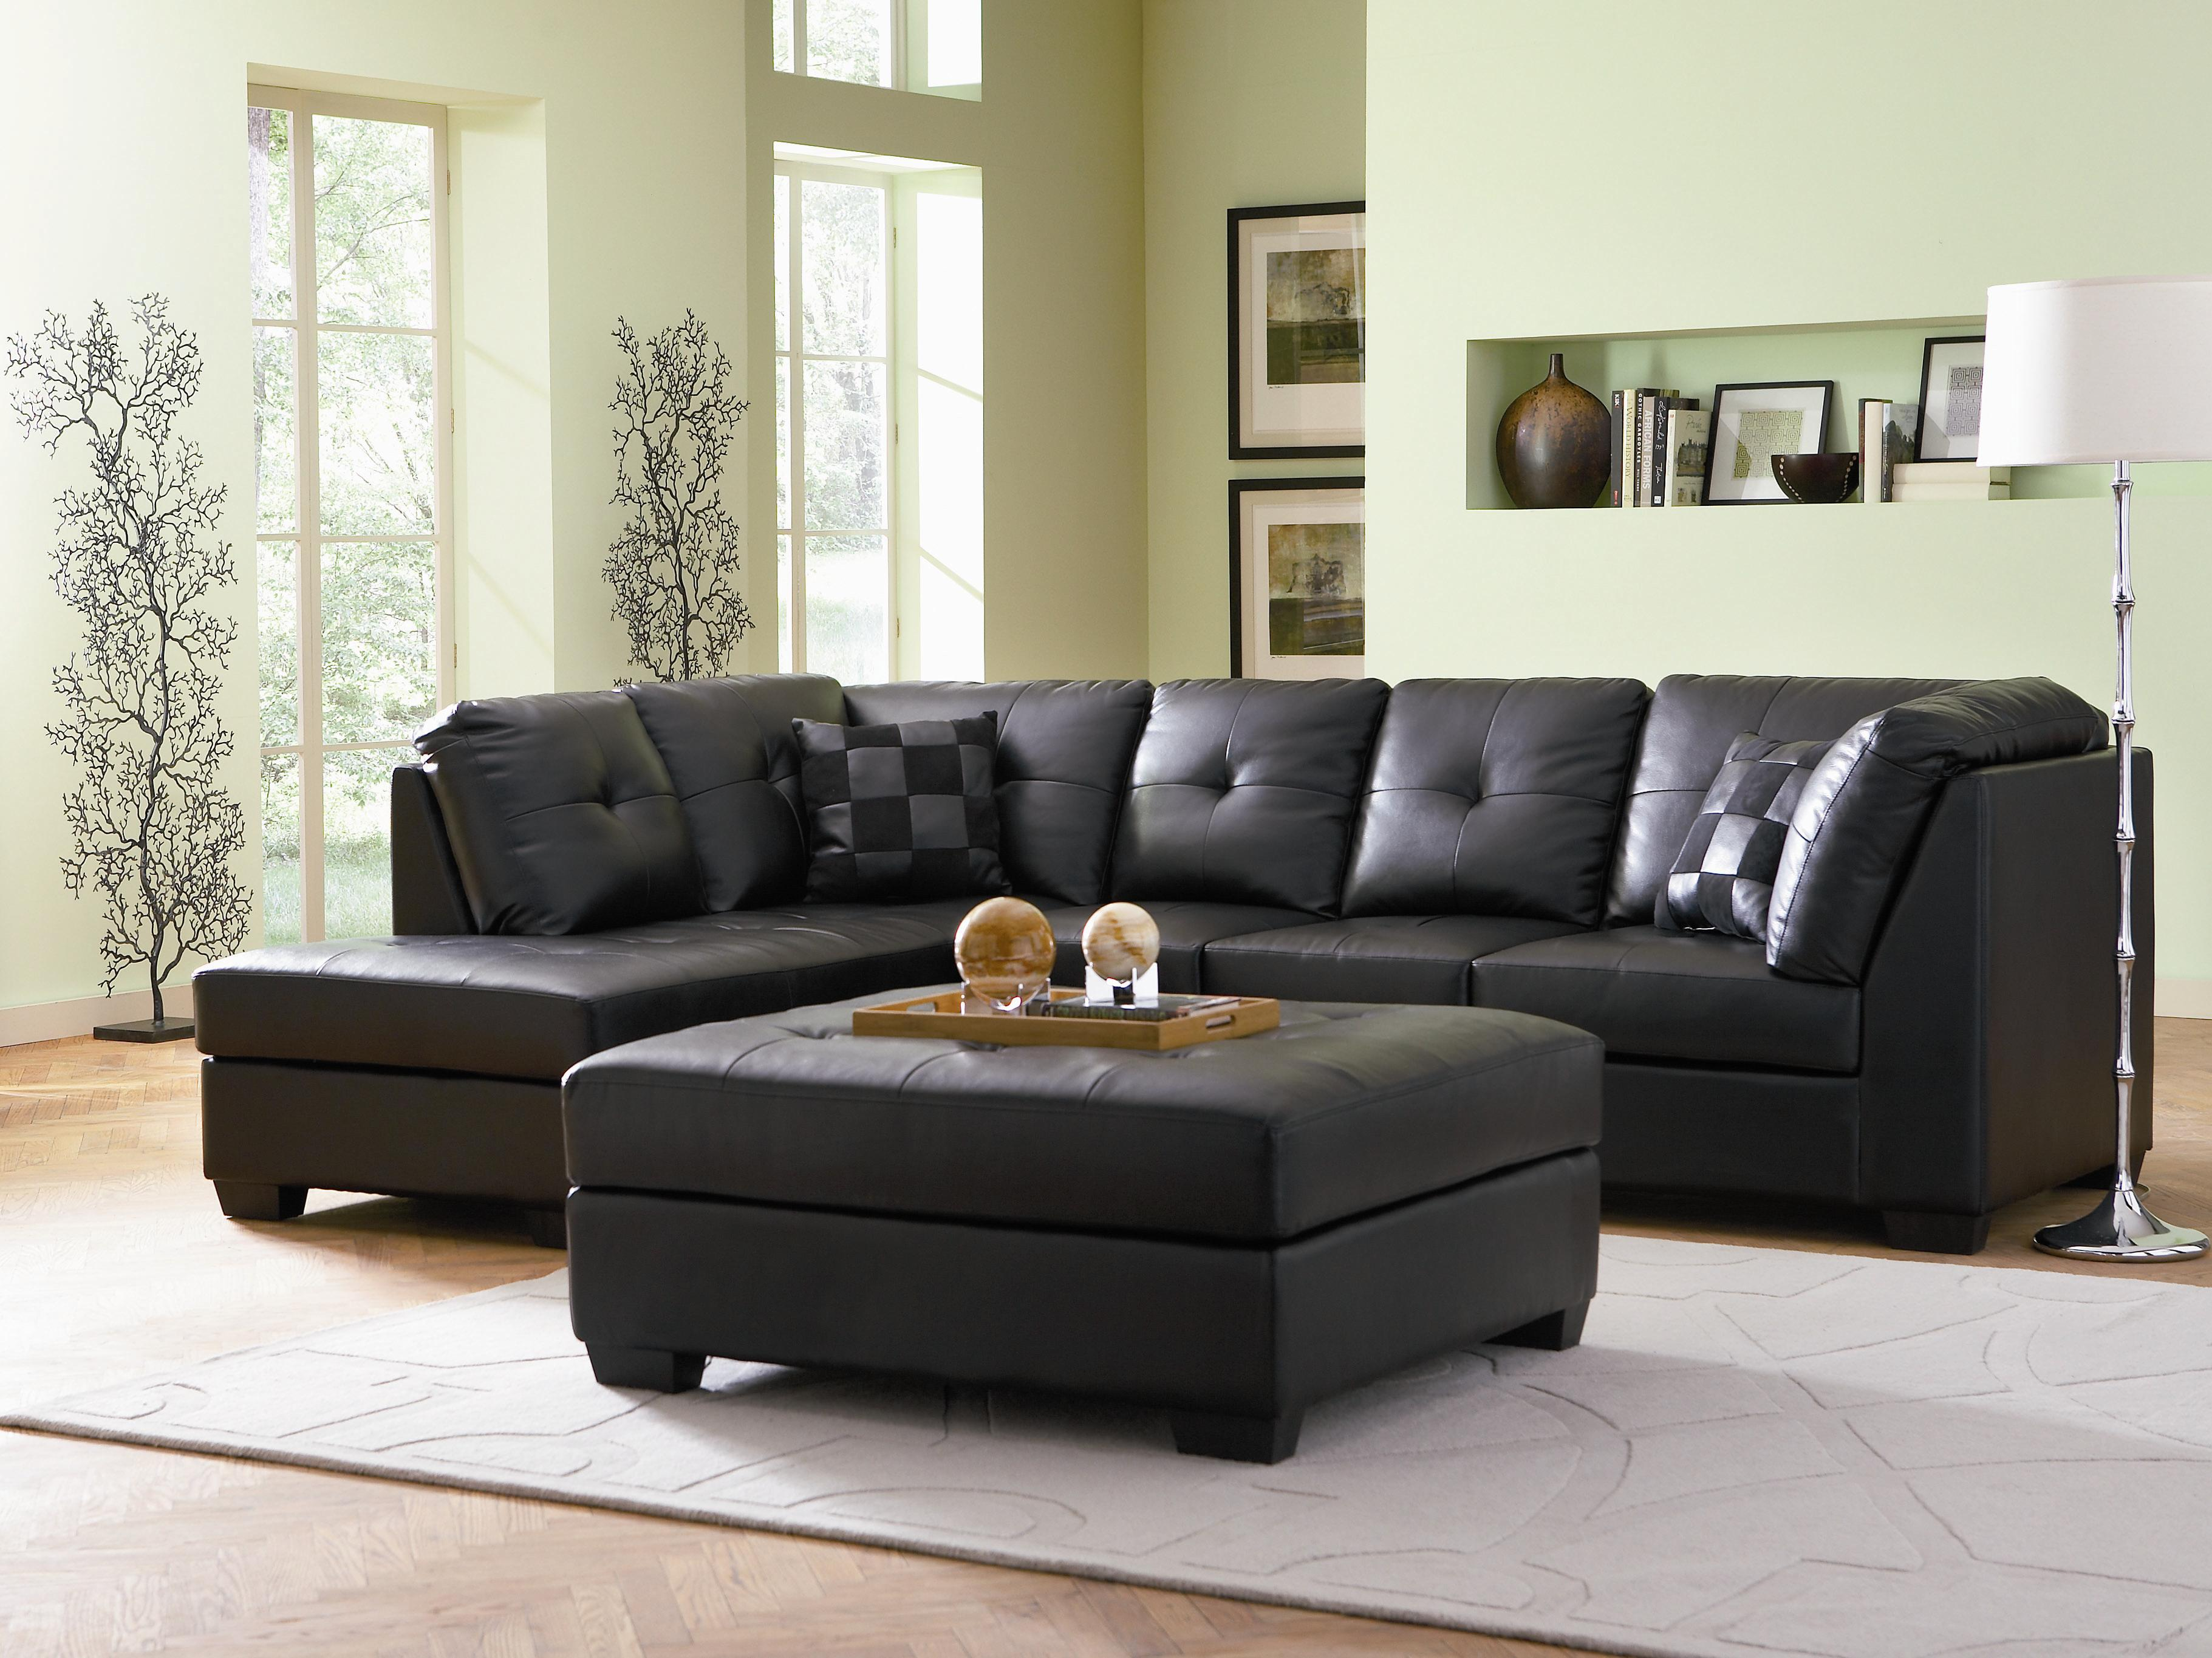 black sofa decorating ideas